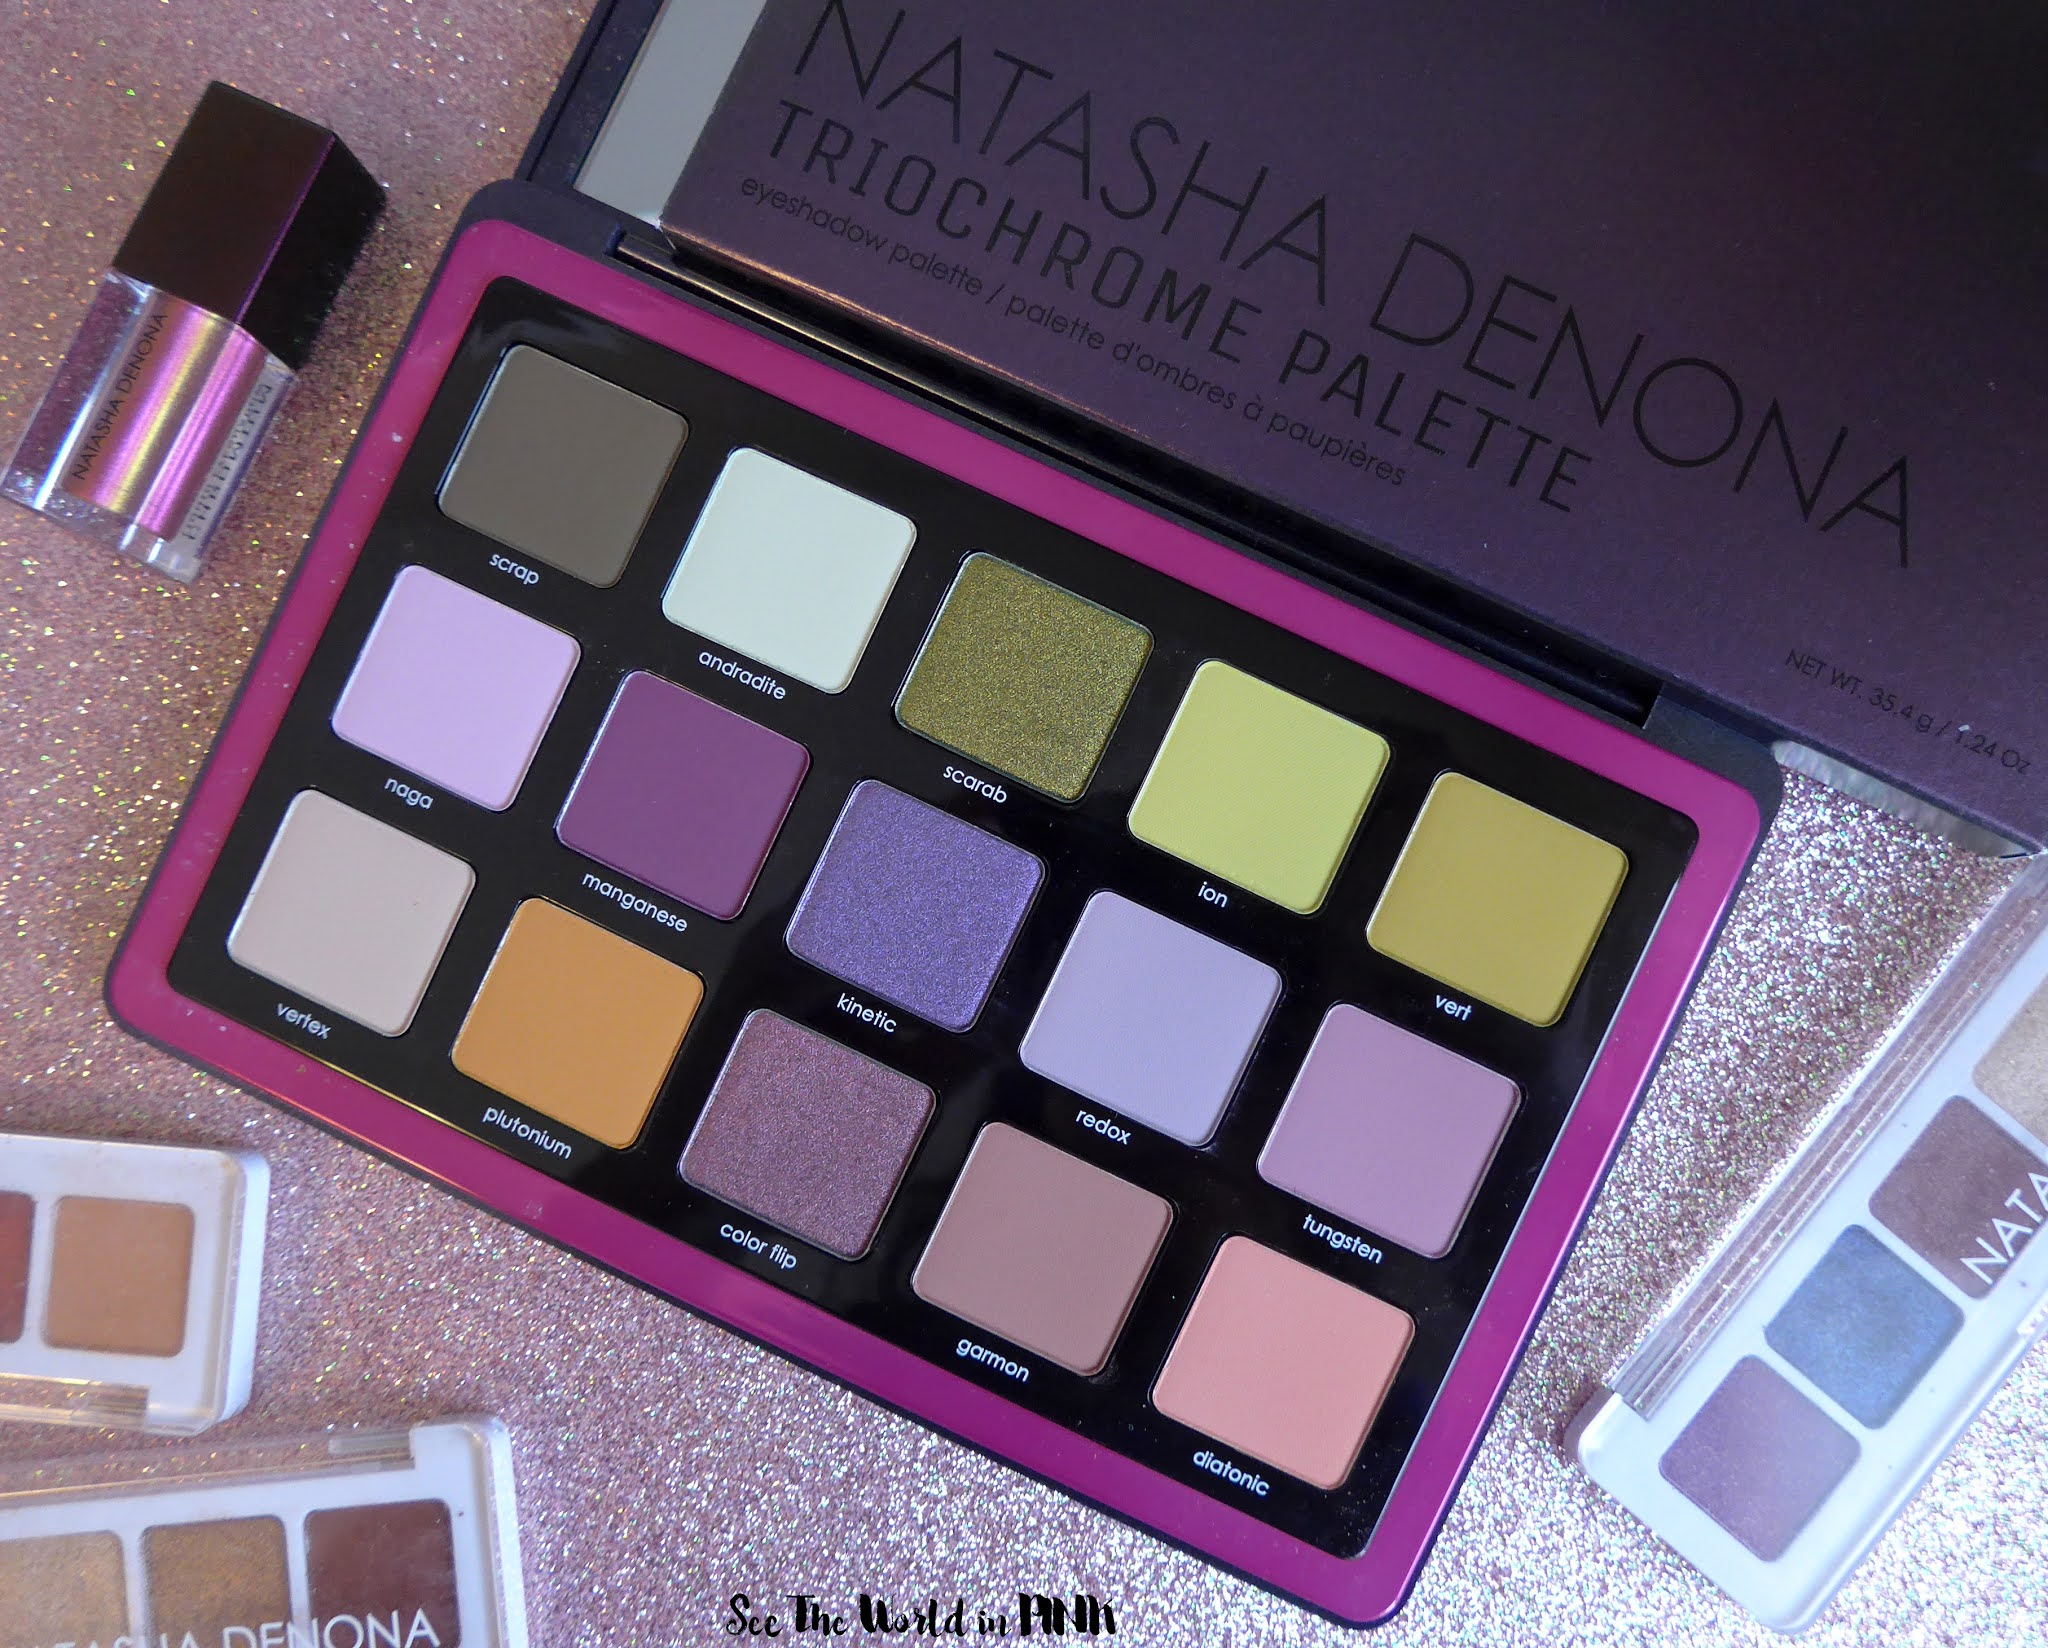 Natasha Denona Trichrome Eyeshadow Palette - 3 Makeup Looks, Swatches and Thoughts!